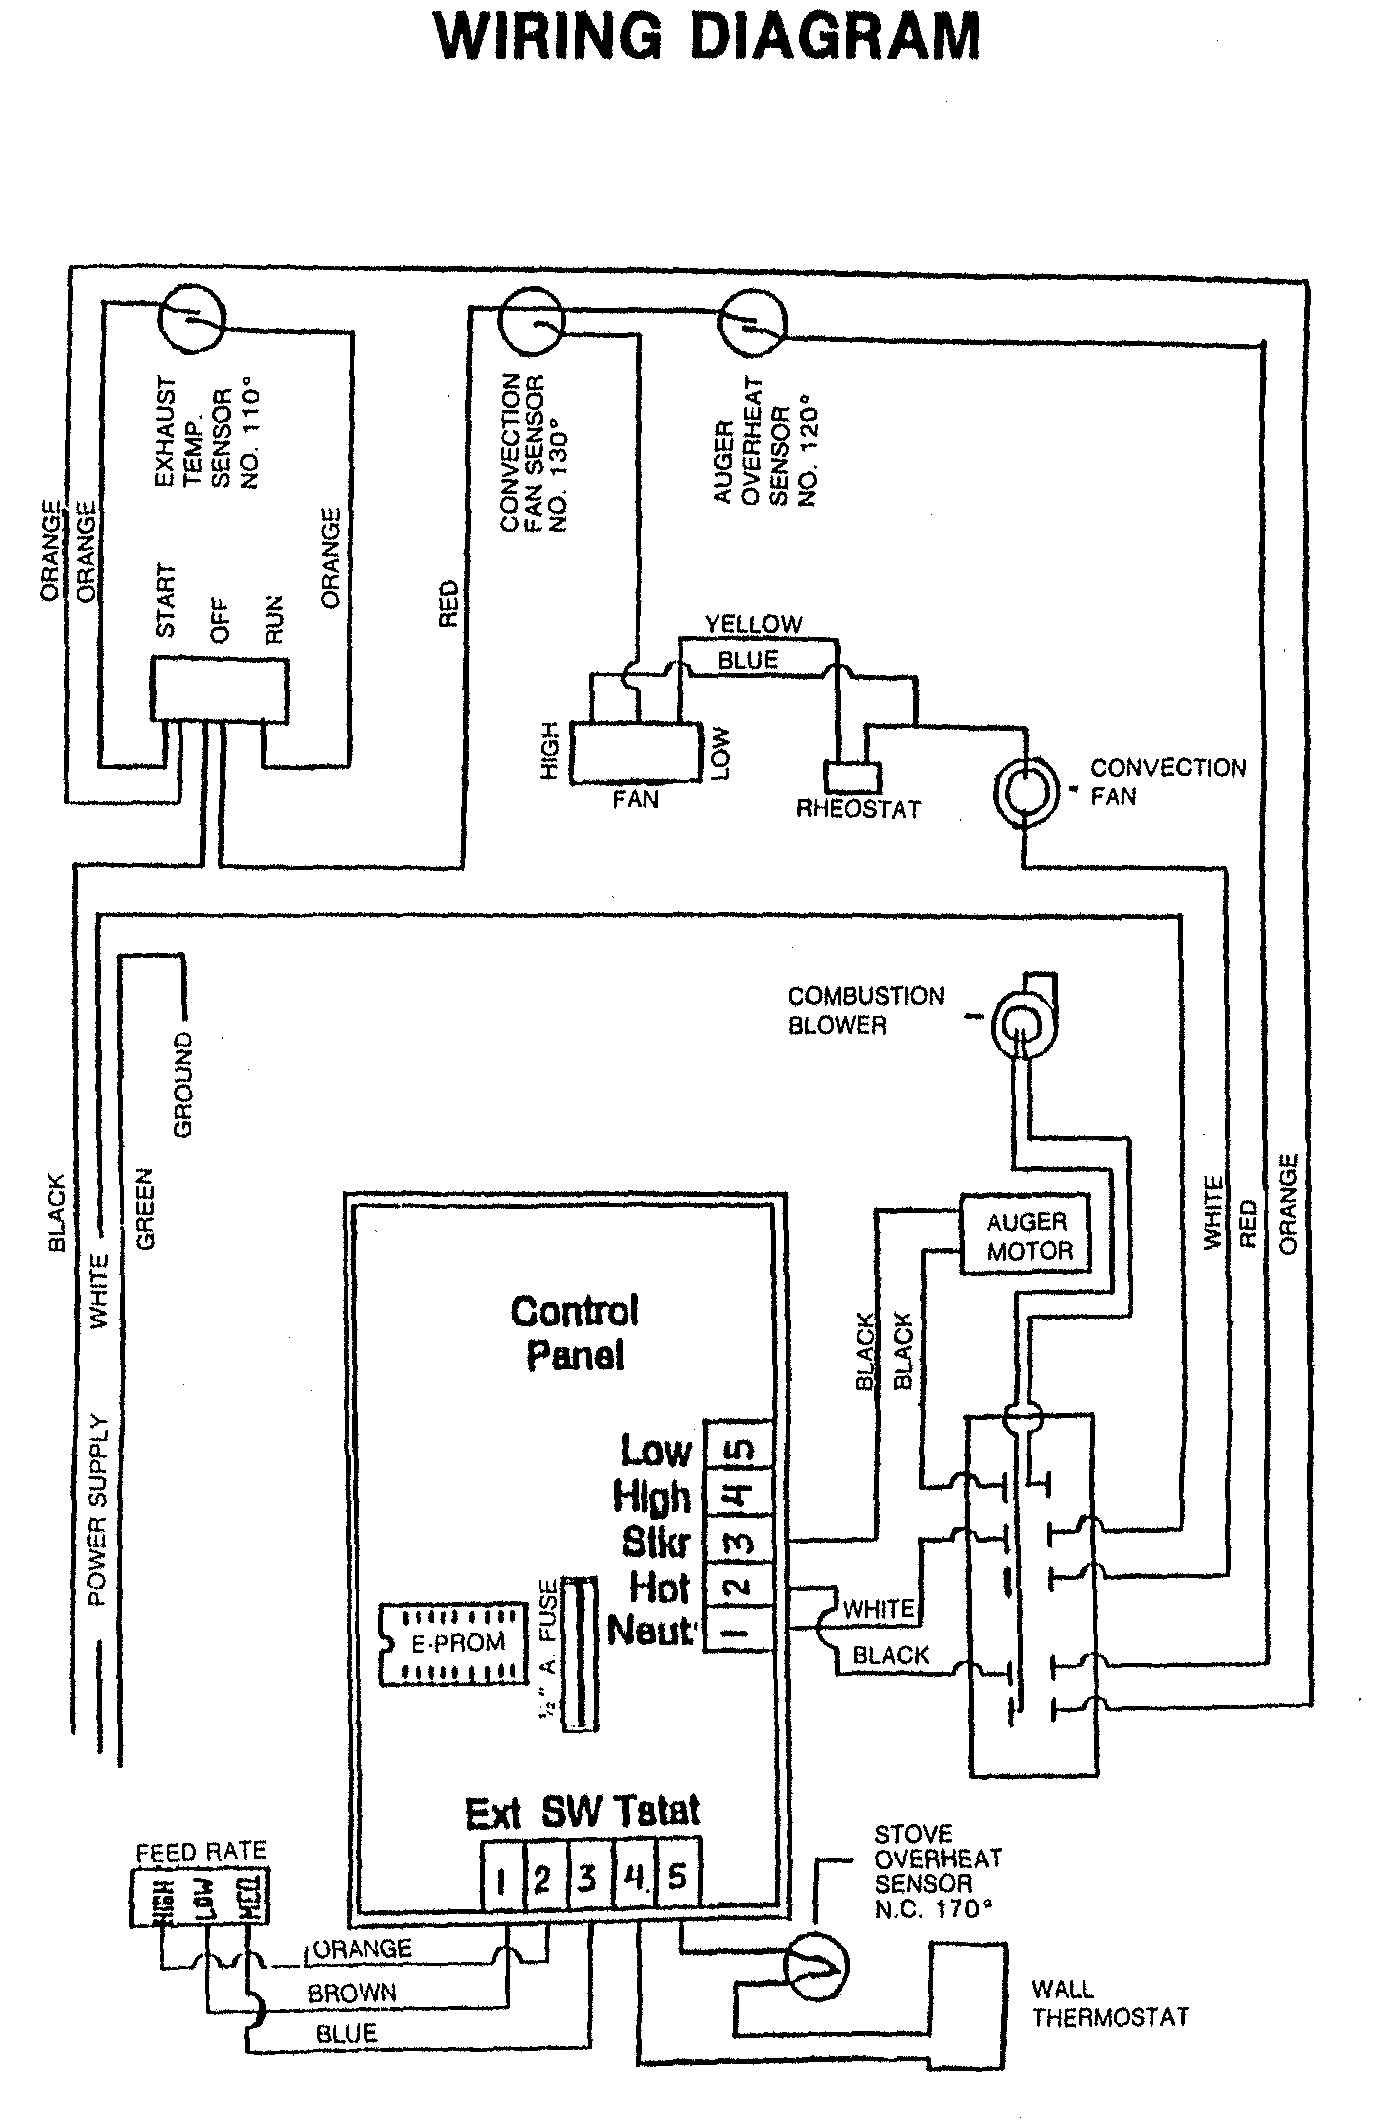 pellet stove wiring diagram with Of A Pellet Master Wire Diagram Just For Info on Of A Pellet Master Wire Diagram Just For Info furthermore Installing New Harman P38 Pellet Stove moreover Wood Stove Thermostat Wiring Wiring Diagrams as well Empyre Elite 200 Wood Boiler Furnace moreover Wiring Diagram For Stove.